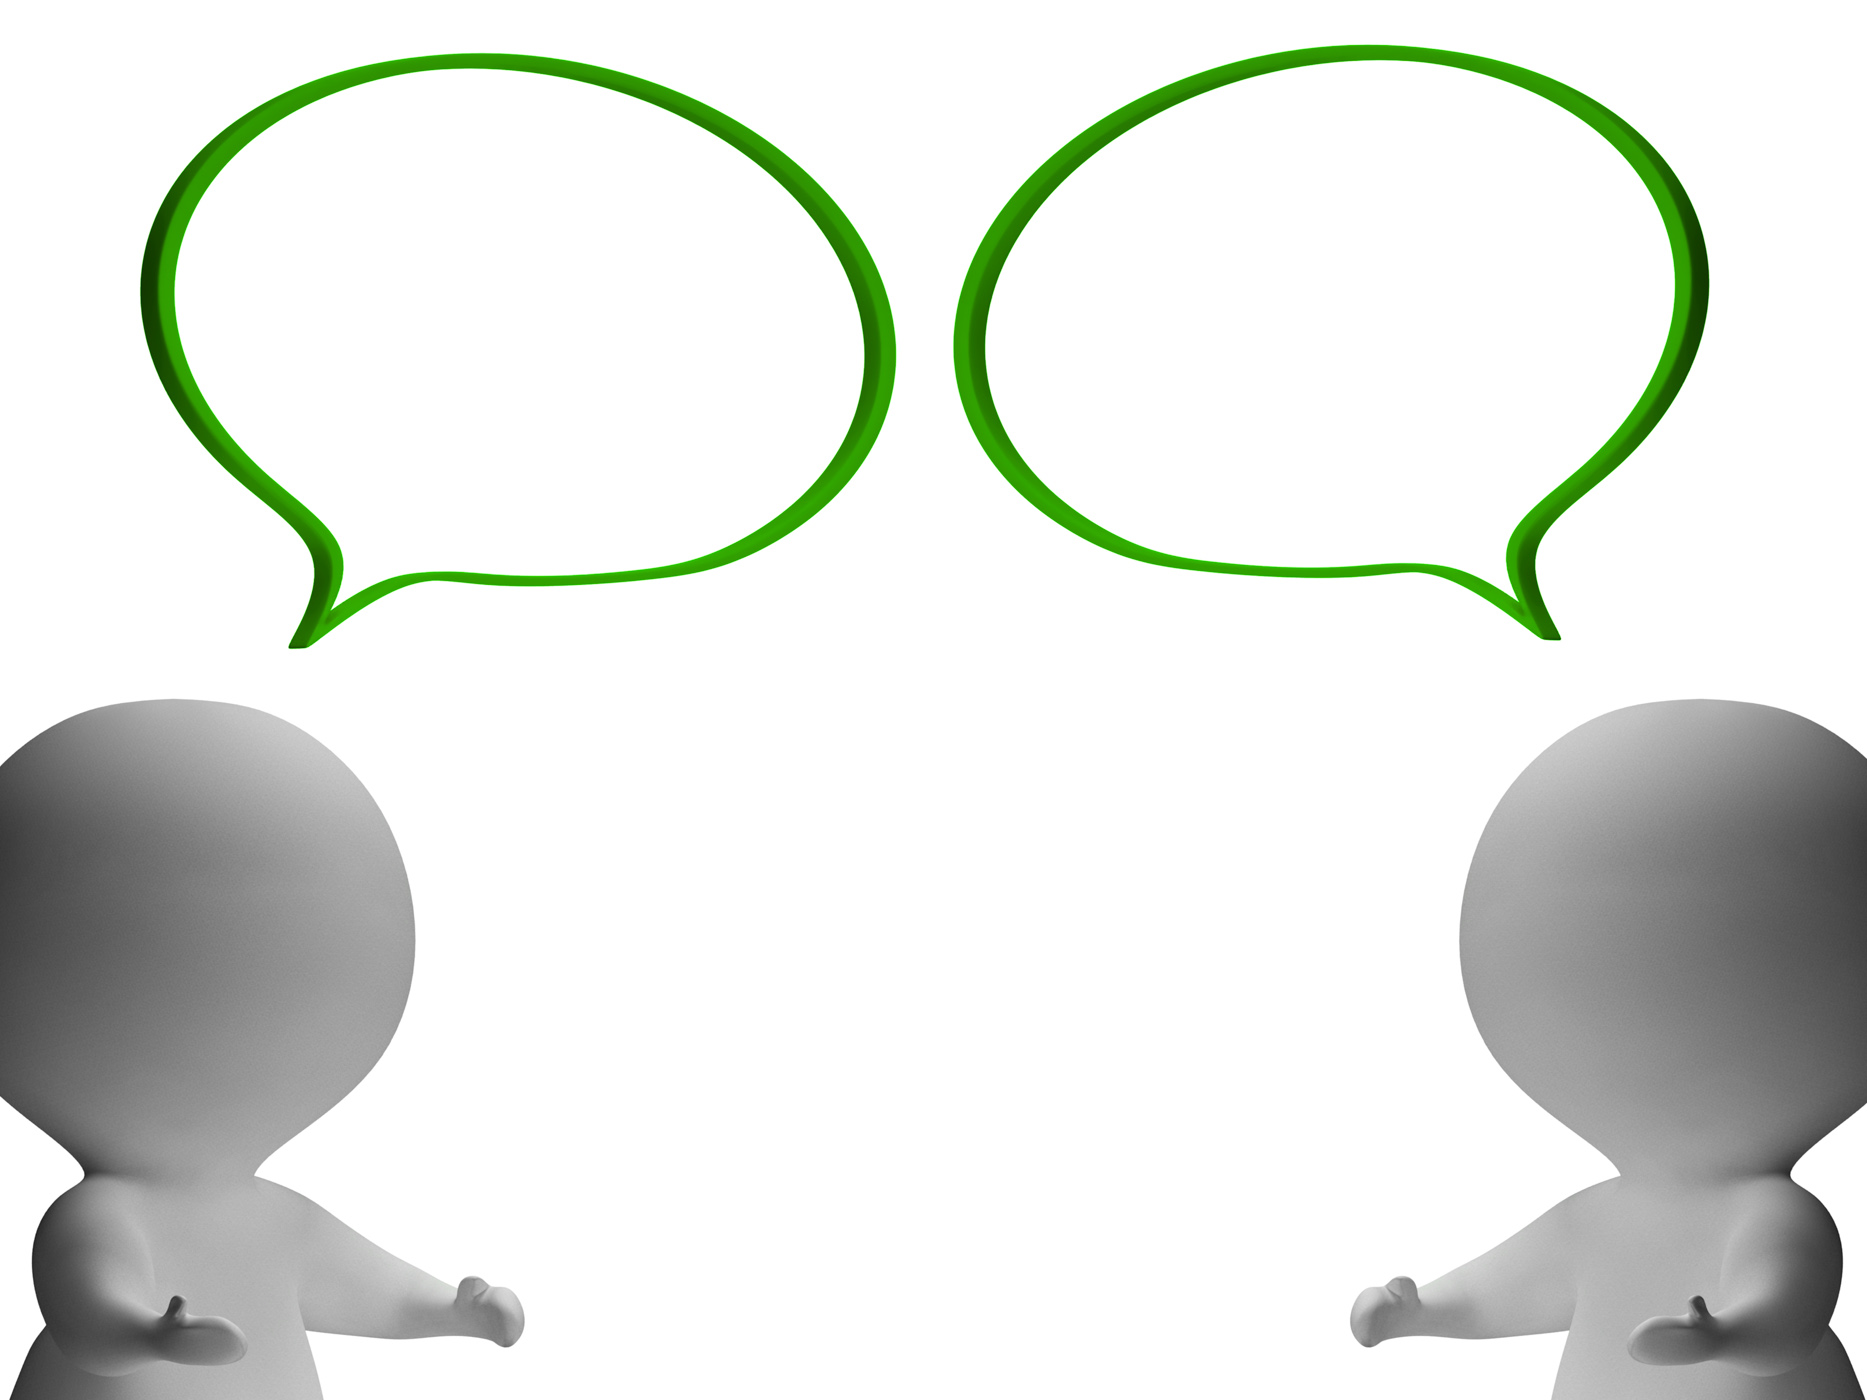 Speech Bubbles And 3d Characters Showing Discussion And Gossip, 3d, Discussion, Speechbubbles, Speechballoons, HQ Photo